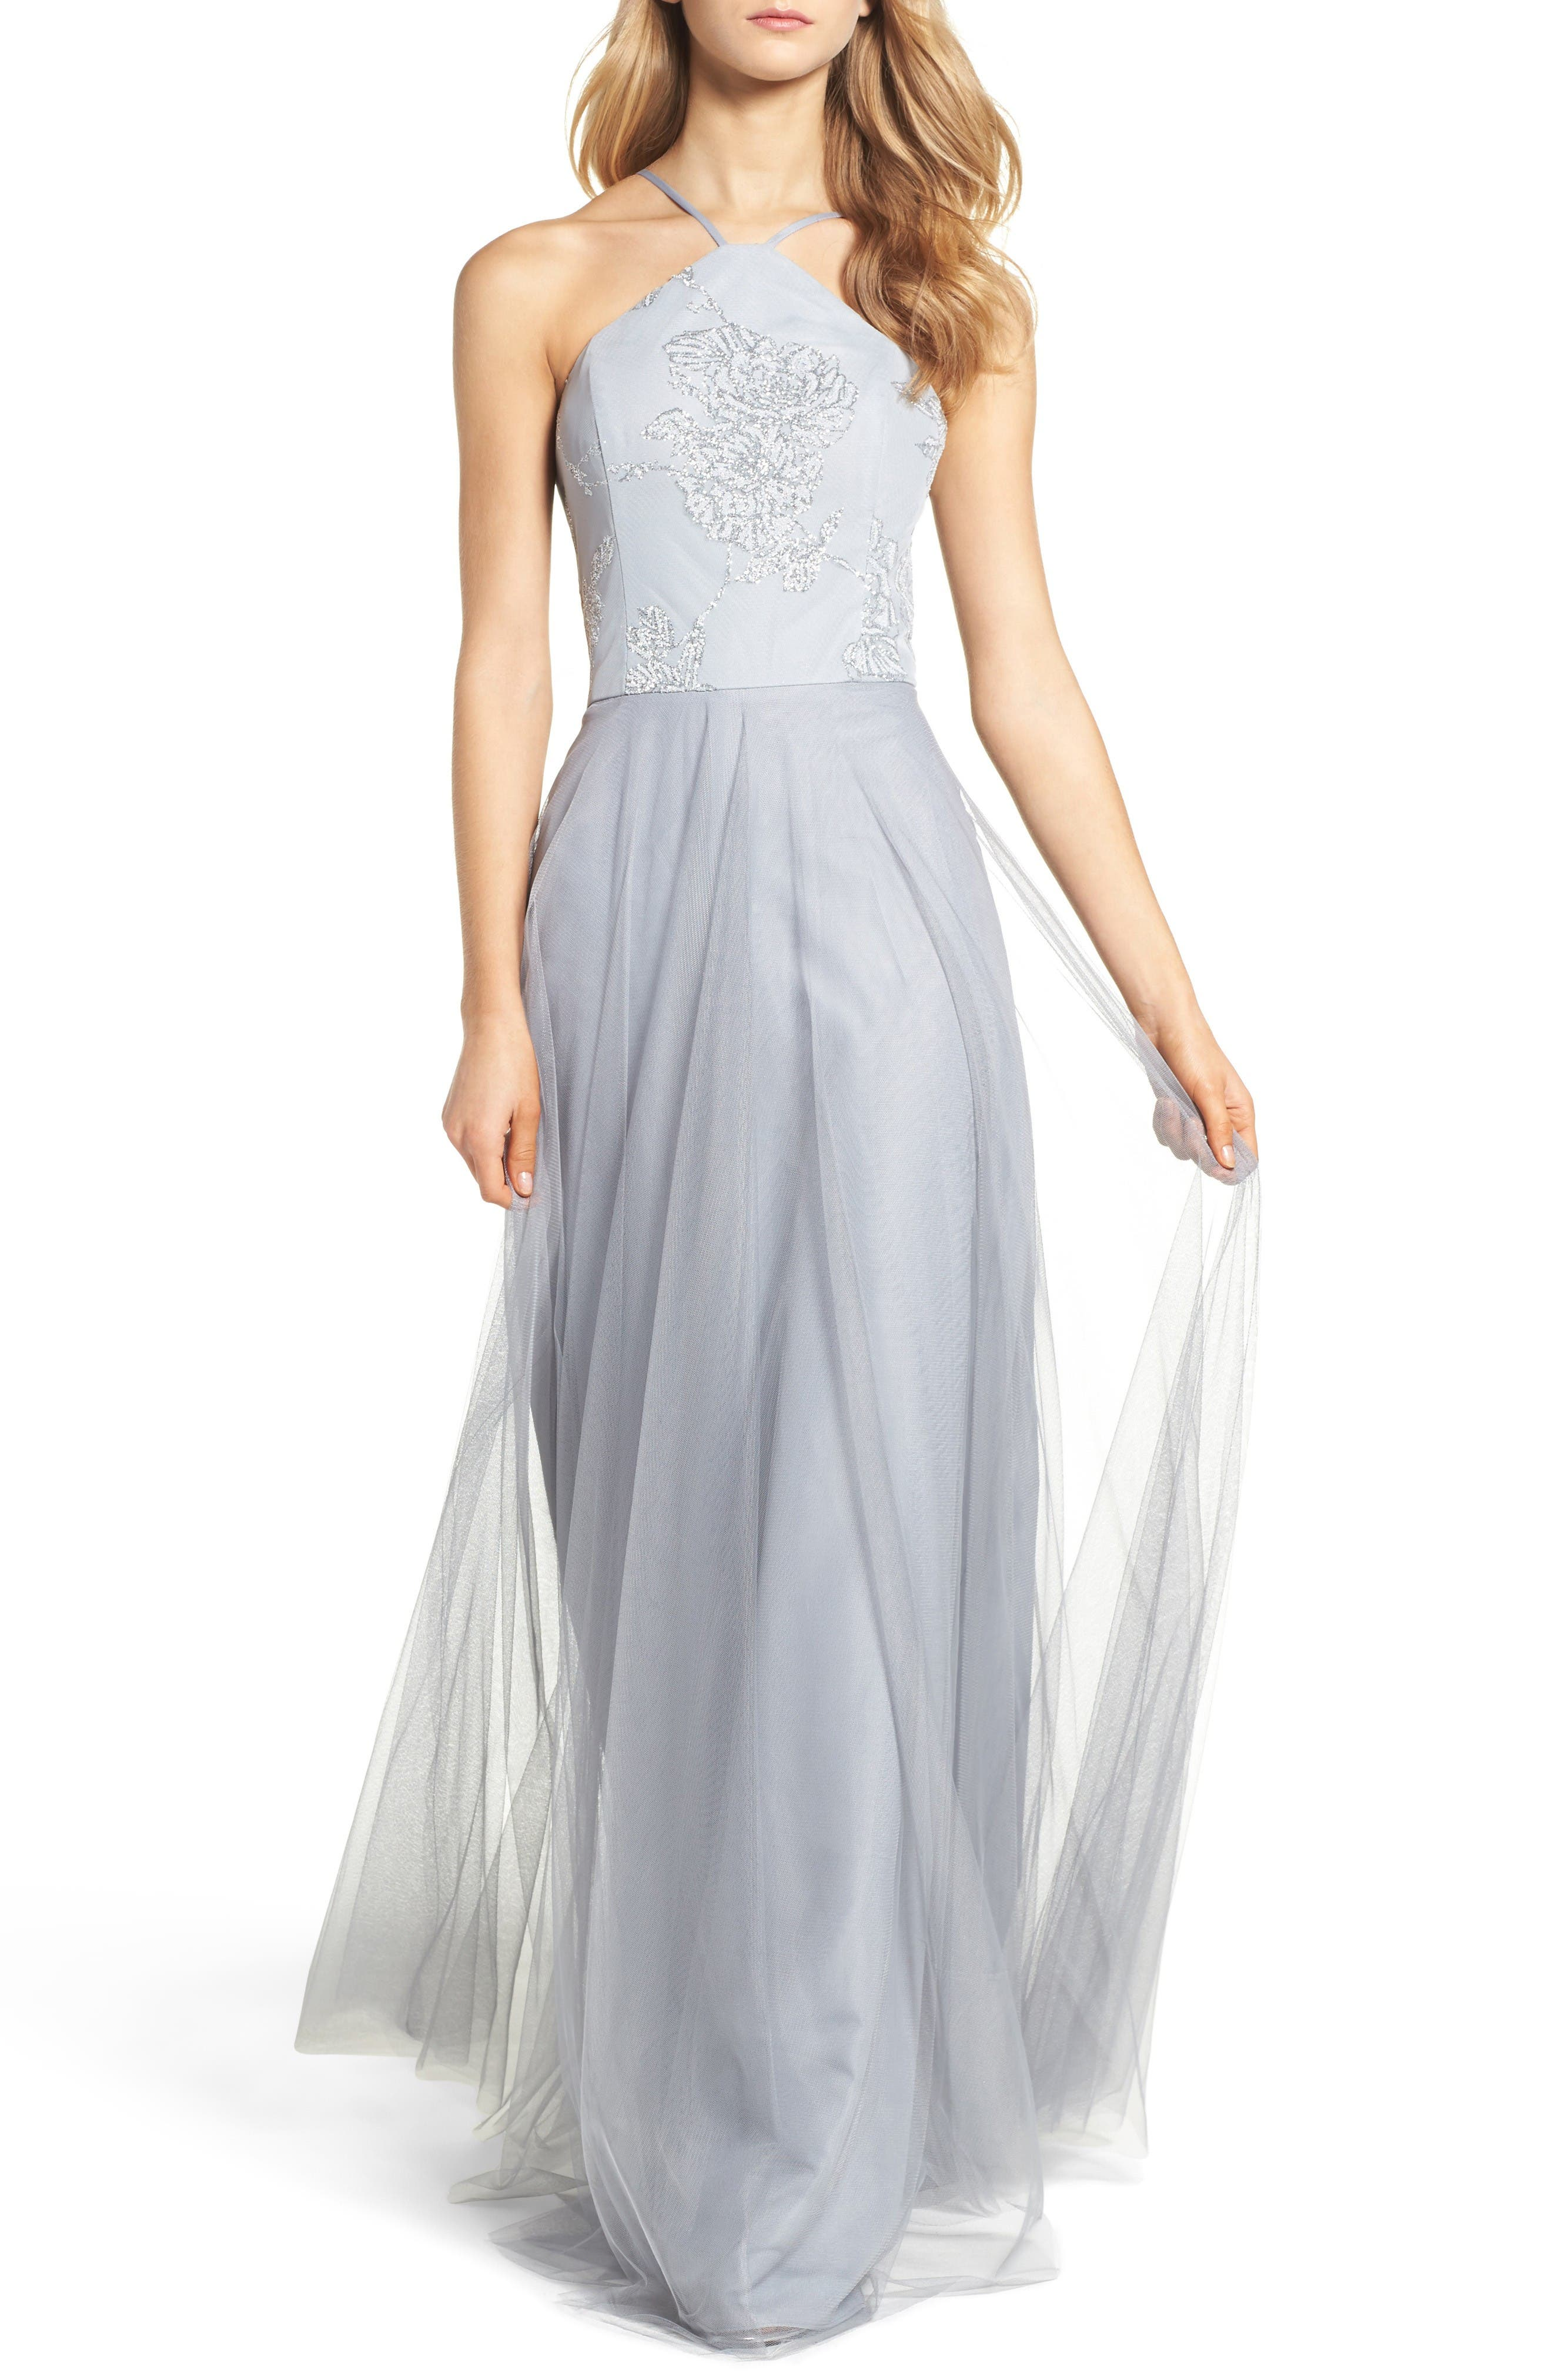 Main Image - Hayley Paige Occasions Metallic Embellished Gown